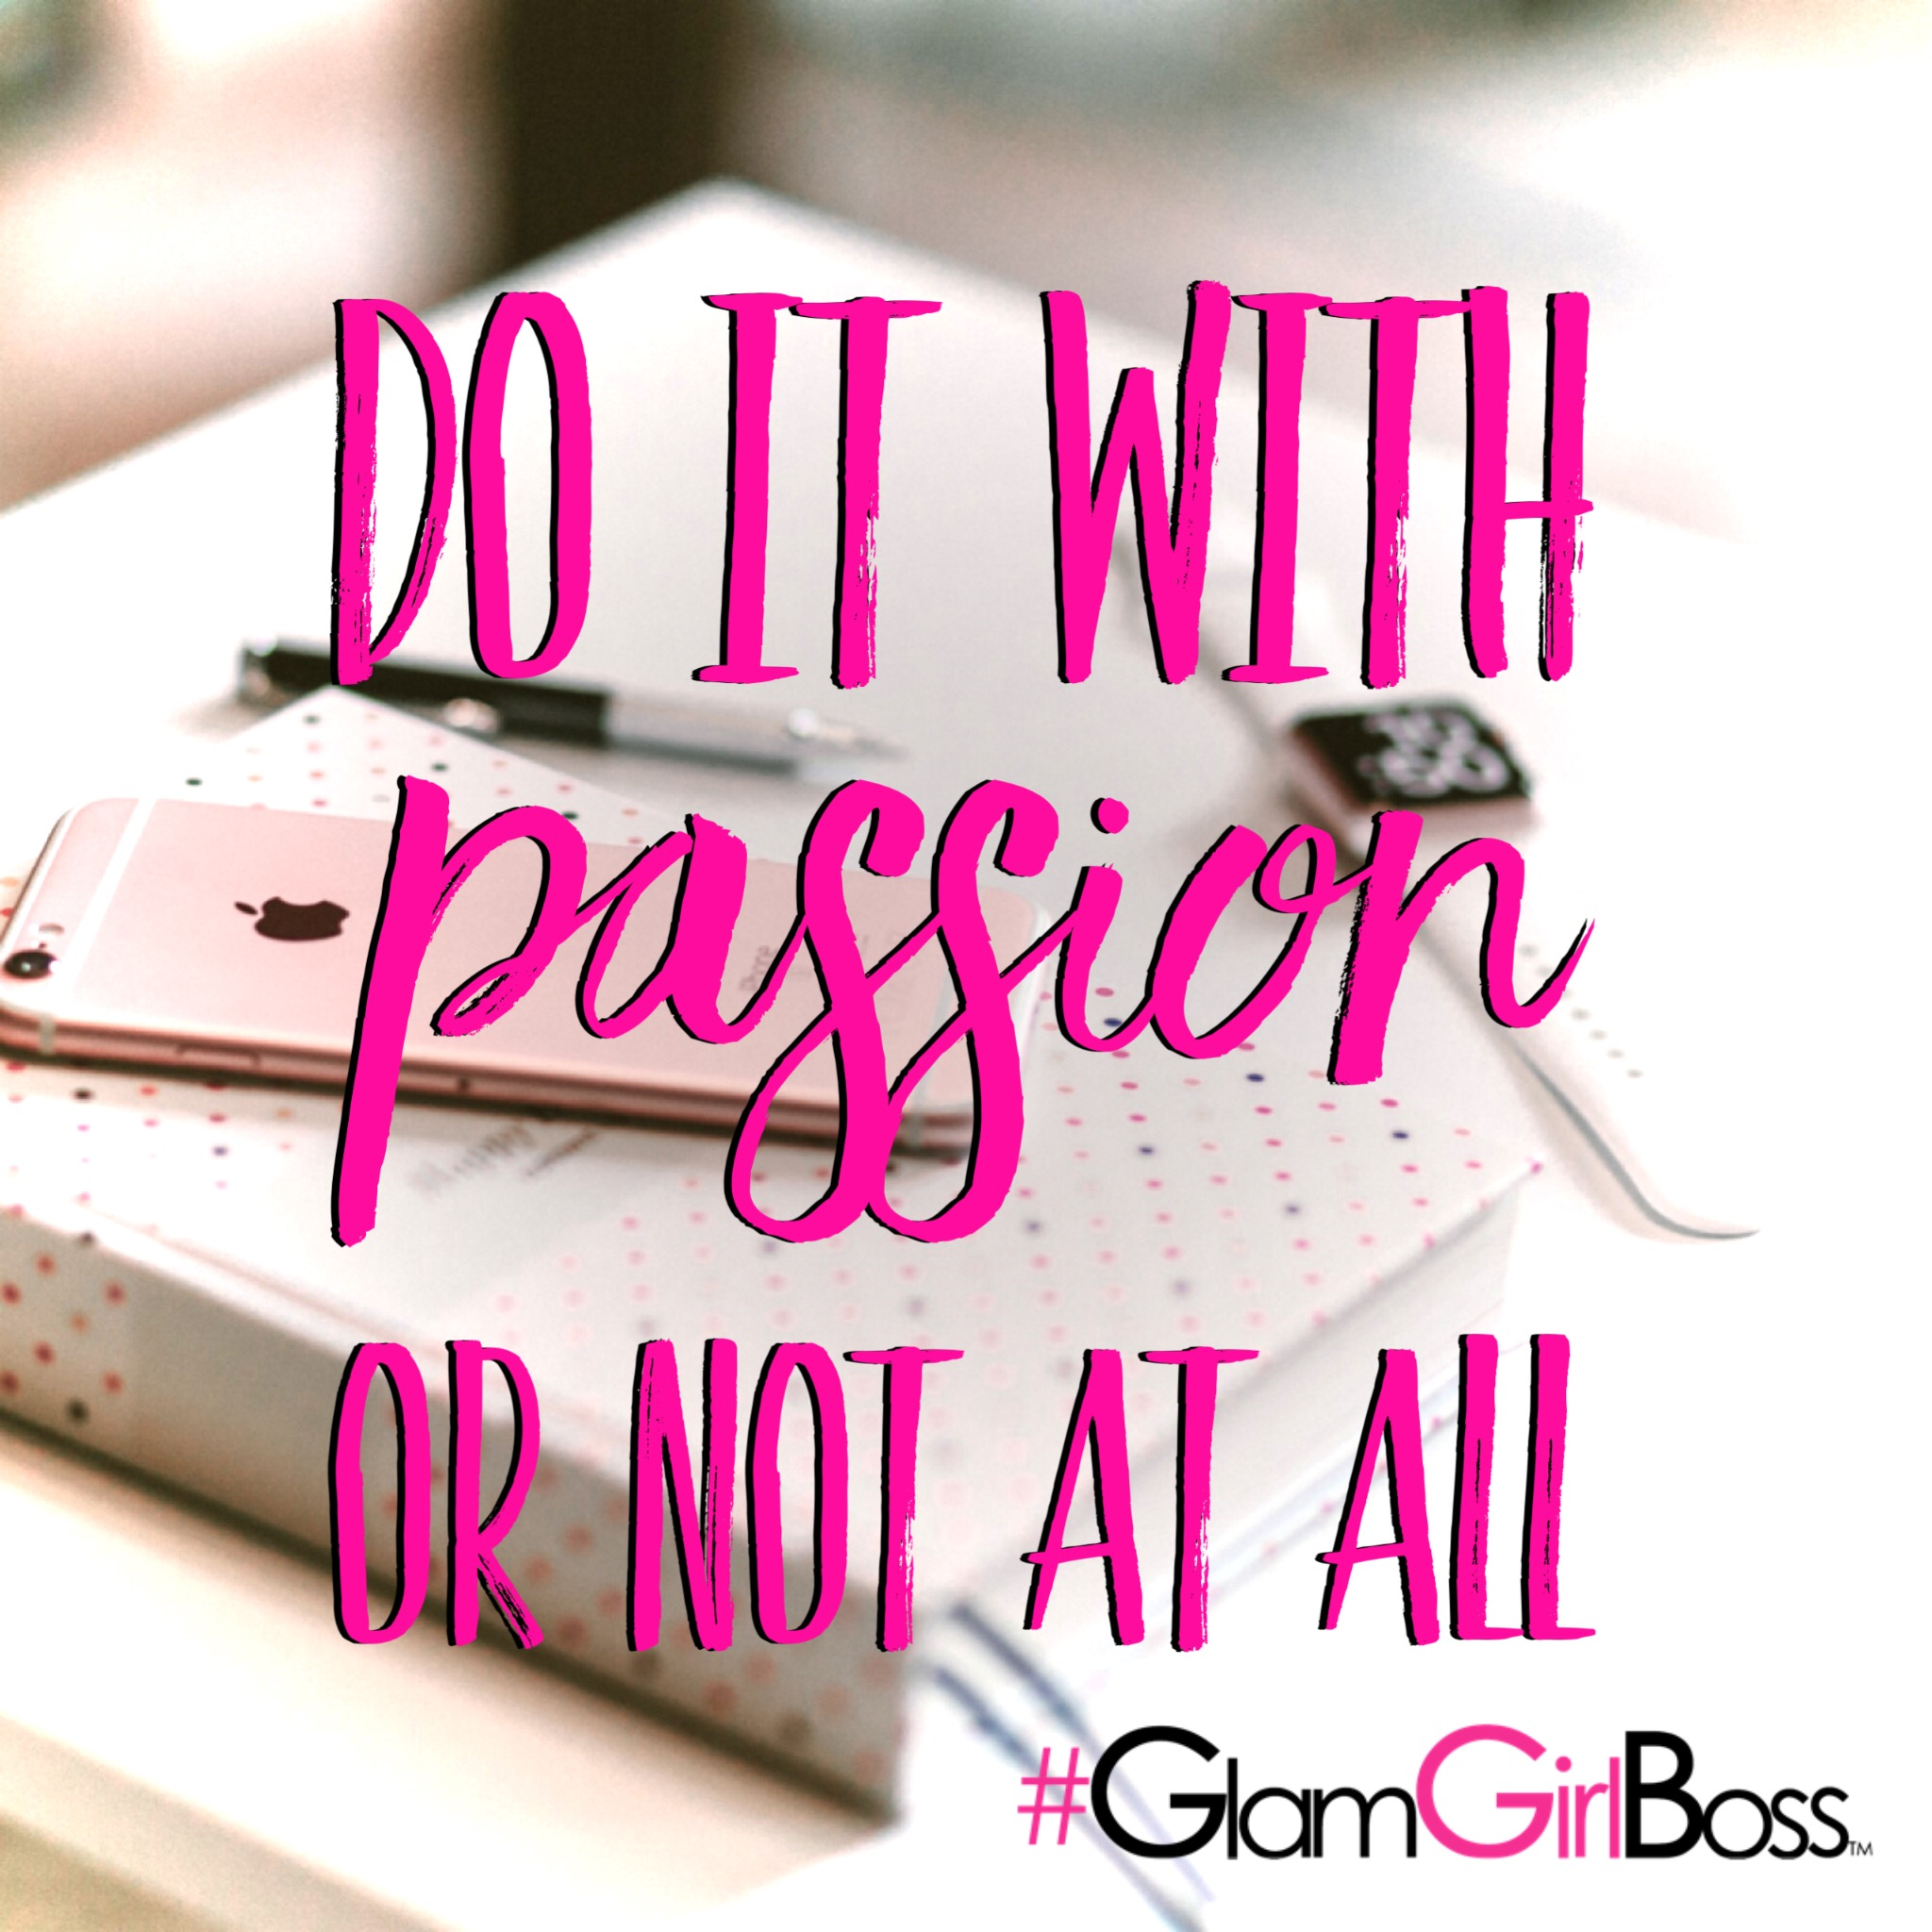 Do it with passion or not at all.